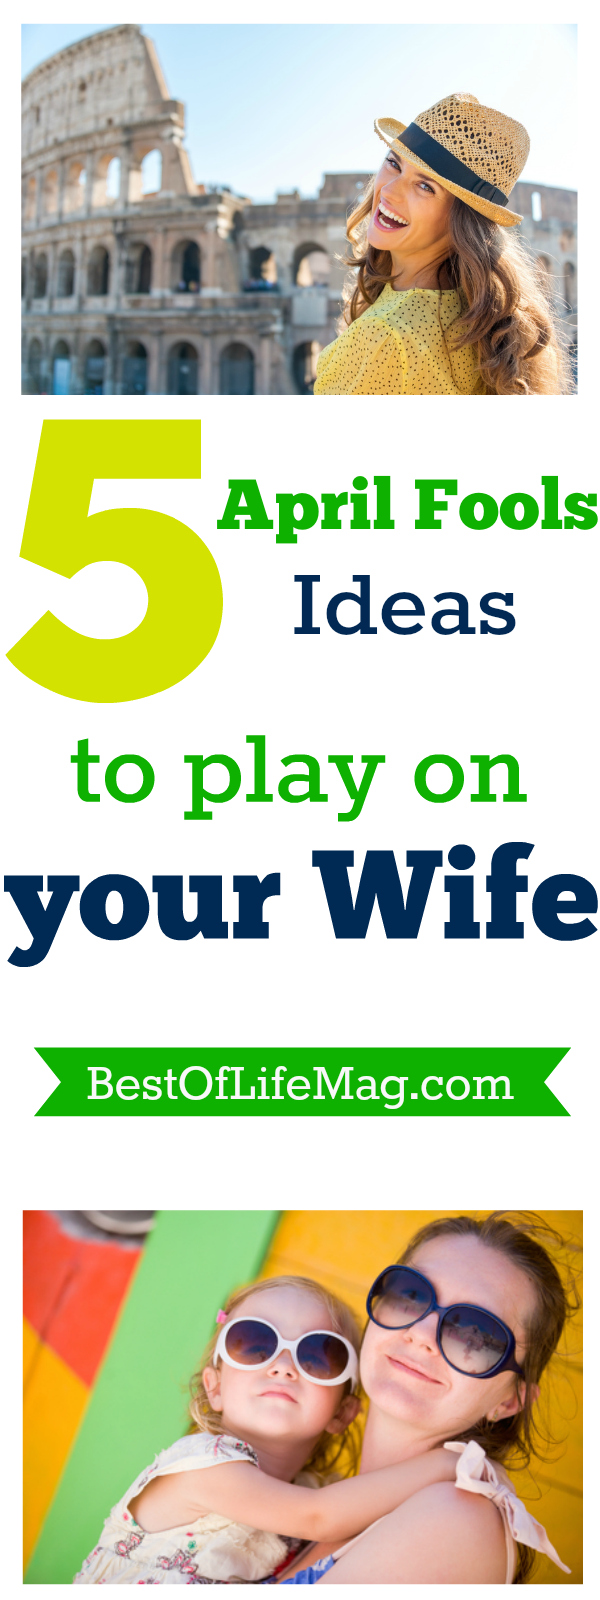 The love for your wife is still there, it's just a more playful love on this day. In order to make it go smoothly, you need to gather a few April fools ideas. via @amybarseghian